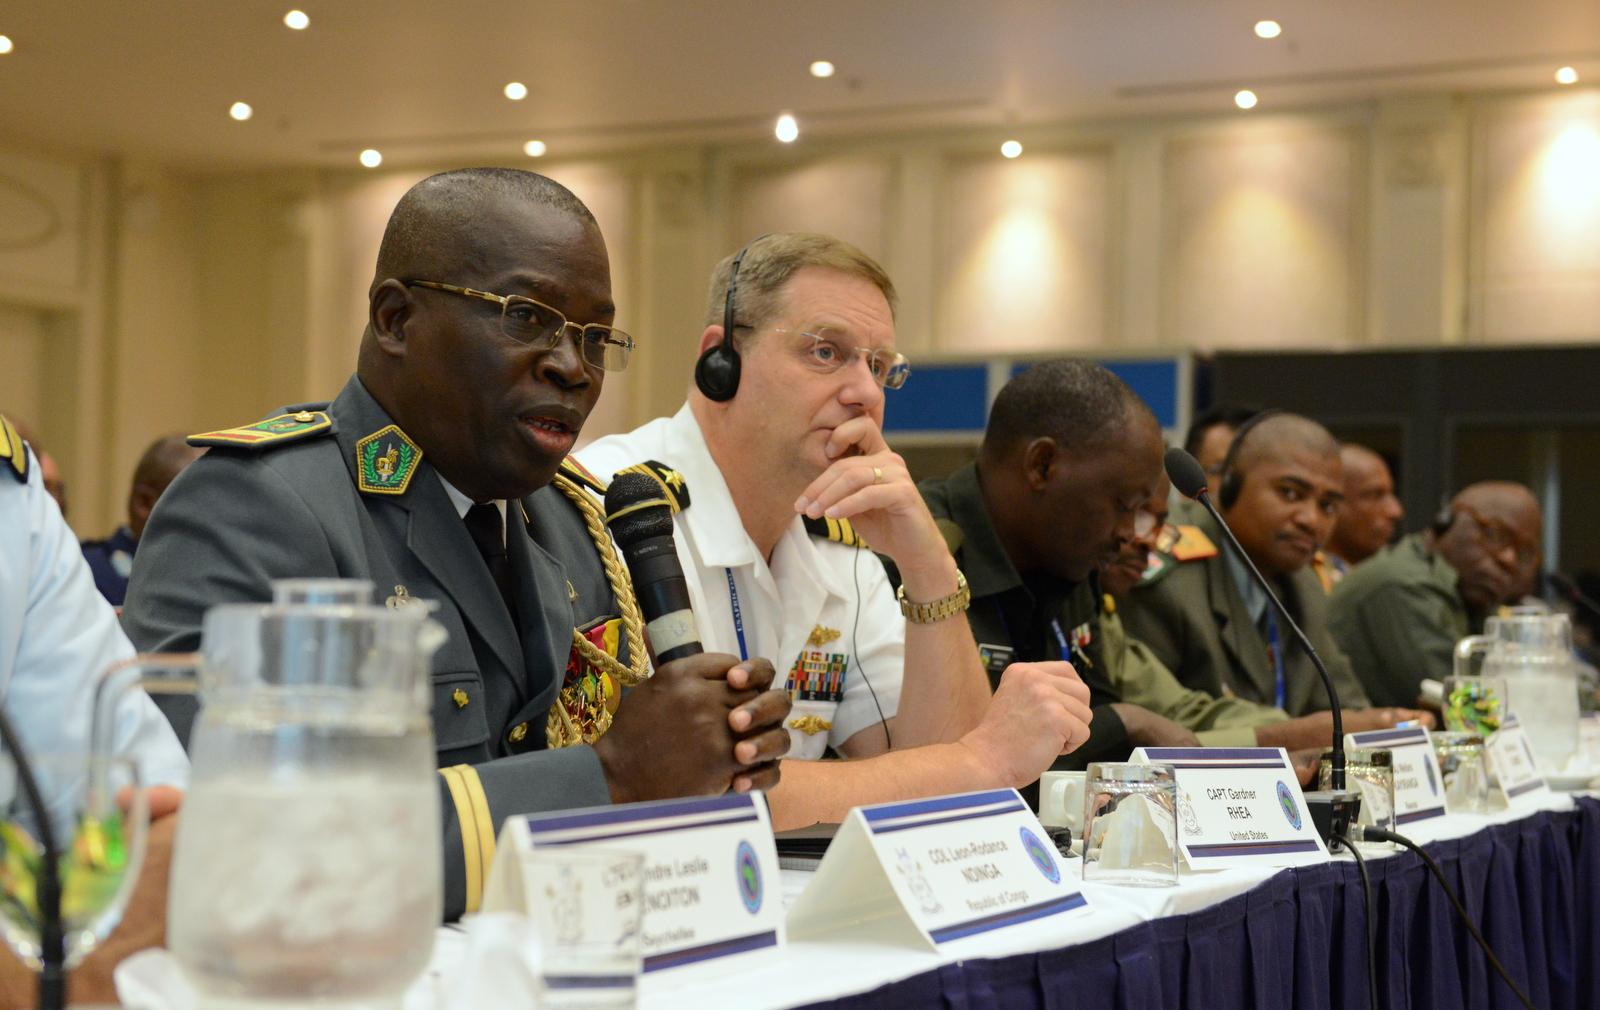 Armed Forces of the Republic of Congo Col. Leon-Rodance Ndinga comments during a table top exercise as part of Africa Endeavor 2015 in Gaborone, Botswana, Aug. 31, 2015. Sponsored by U.S. Africa Command, Africa Endeavor is an annual communications event designed to increase interoperability between partner nations in support of United Nations and African Union peacekeeping, disaster response and humanitarian assistance missions.